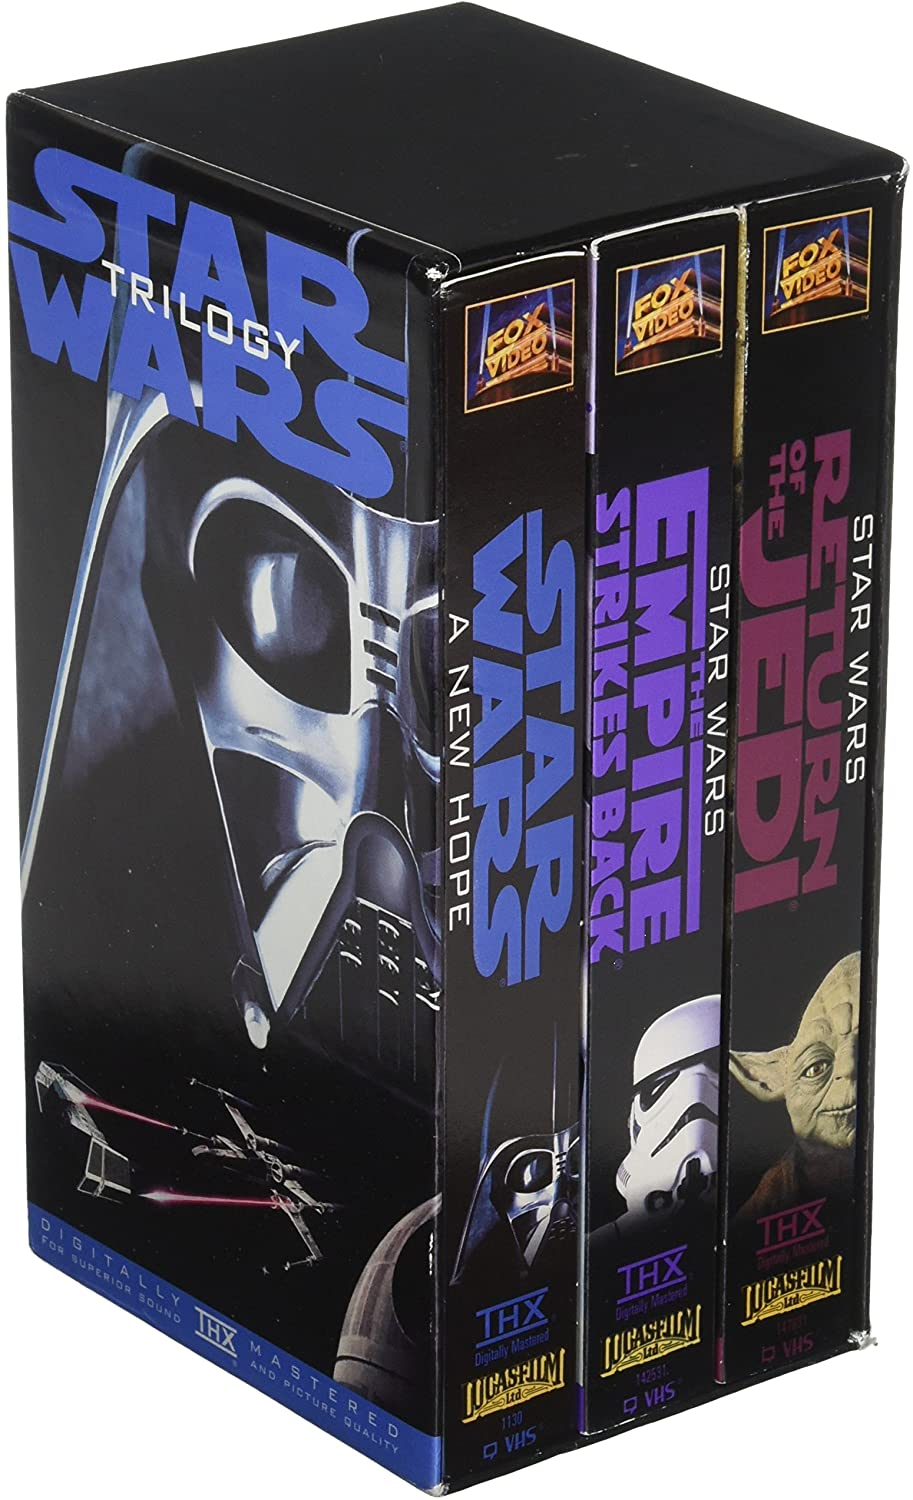 Star Wars Trilogy (THX Fullscreen VHS)